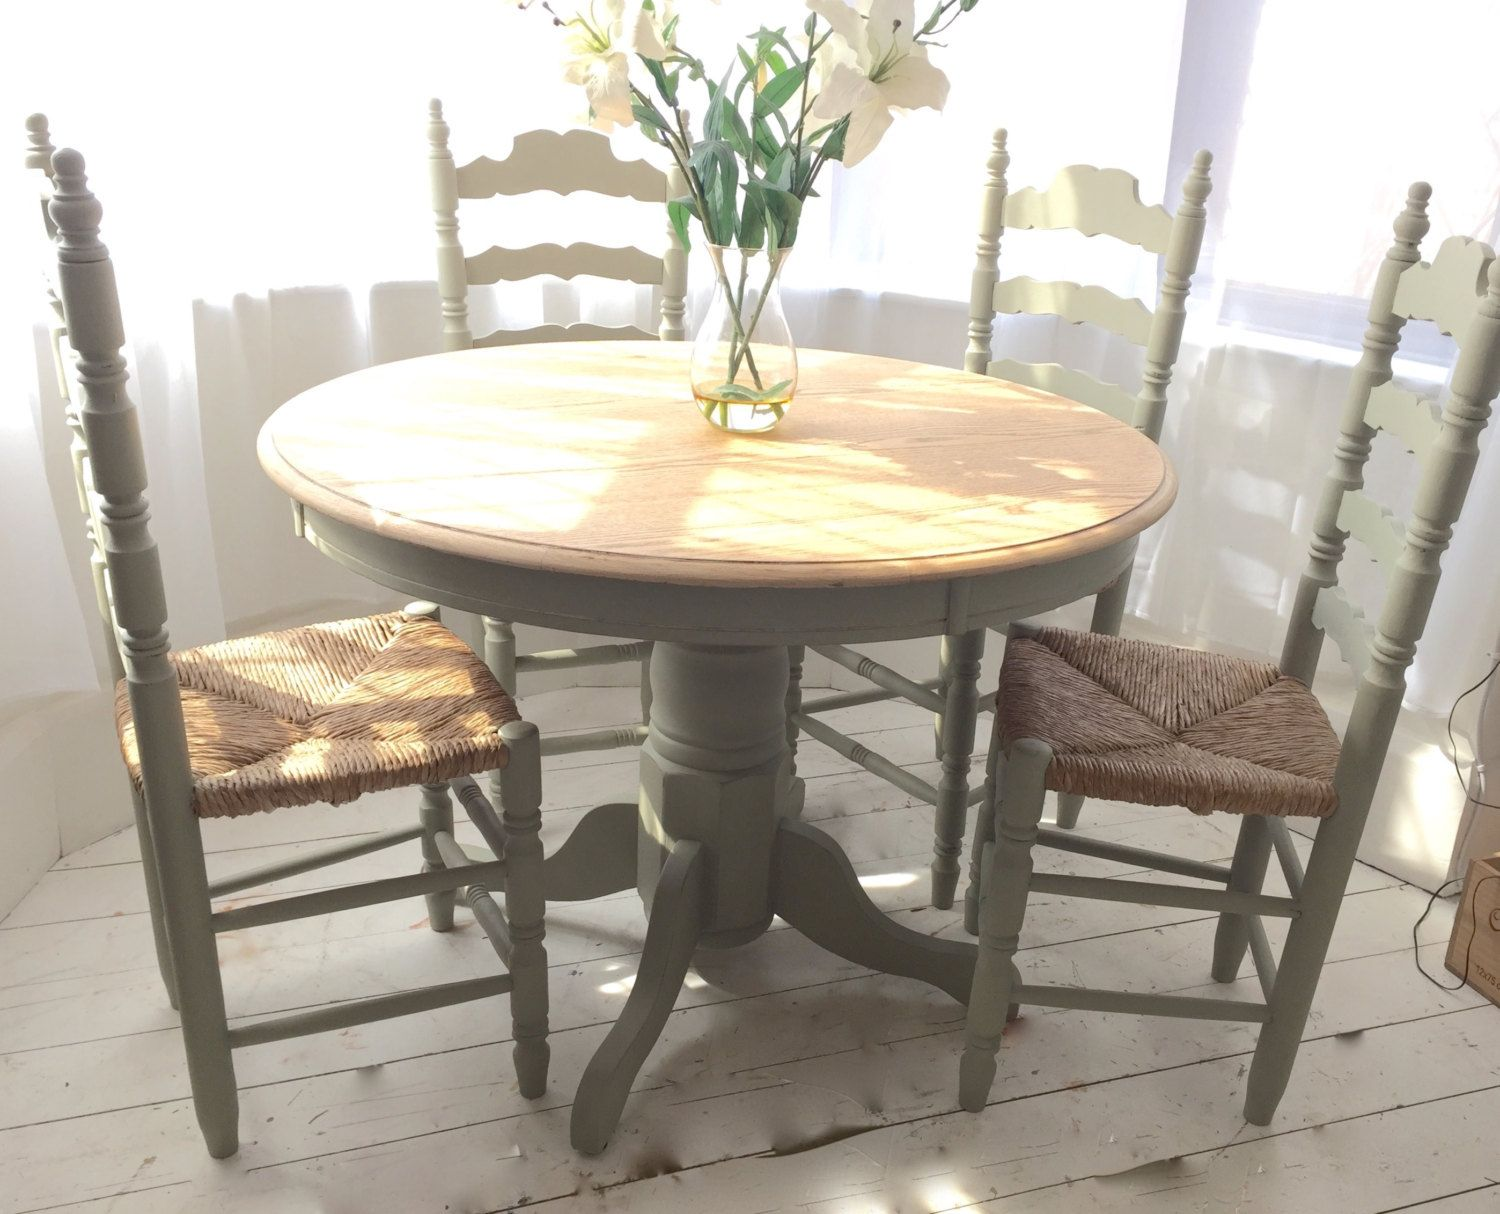 Sage Green French Country Oak Dining Set With Vintage Rush Seat Chairs By BeautifulPigInterior On Etsy